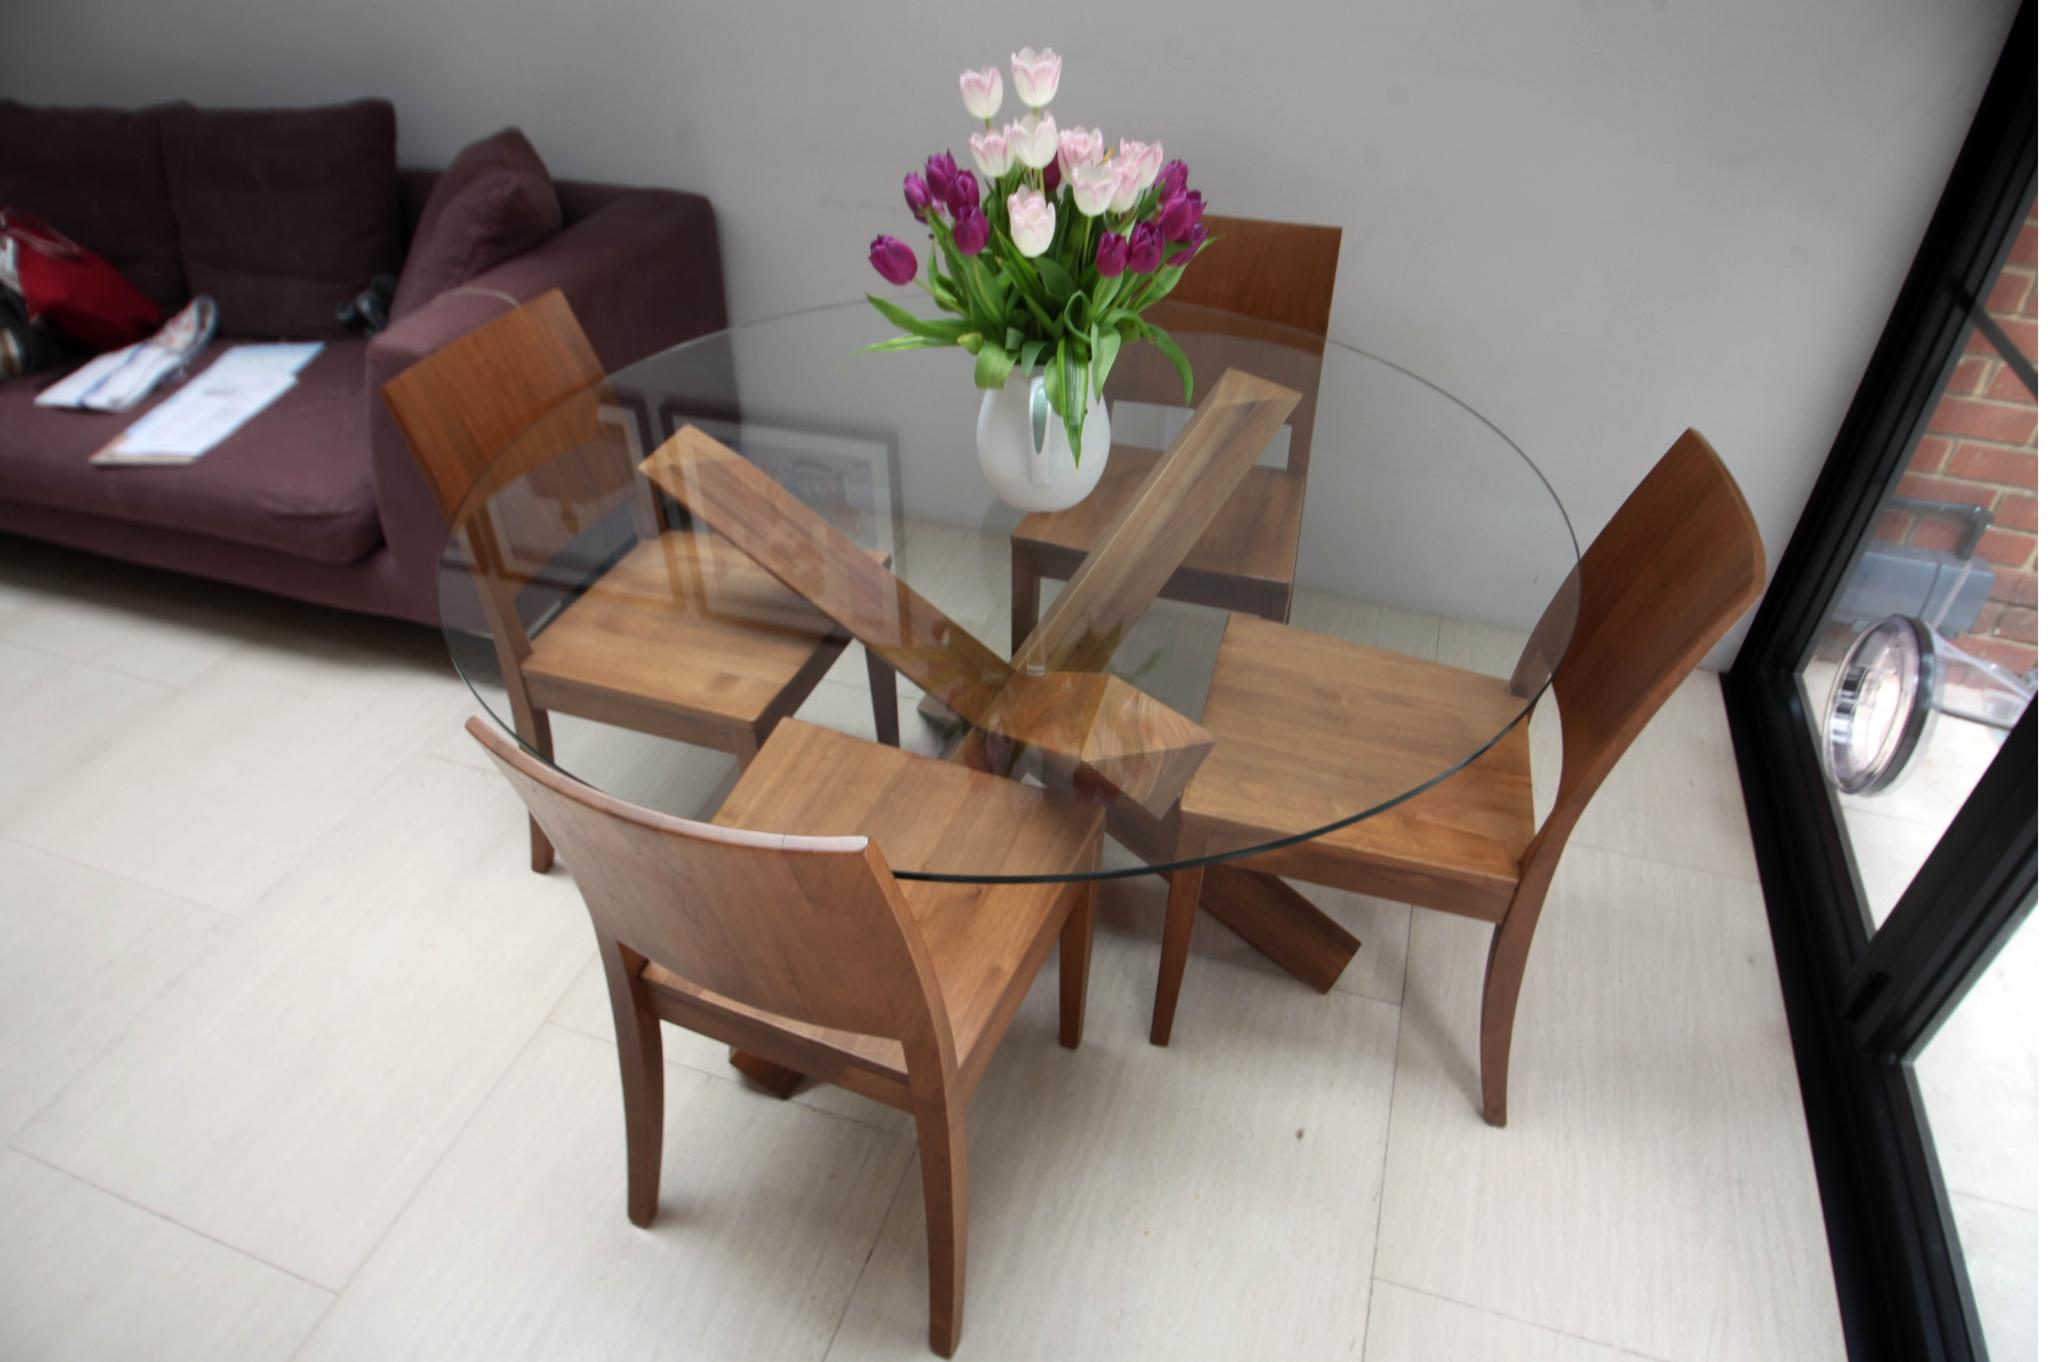 Approved Used Dining Table Chairs, Used Dining Room Chairs With Arms